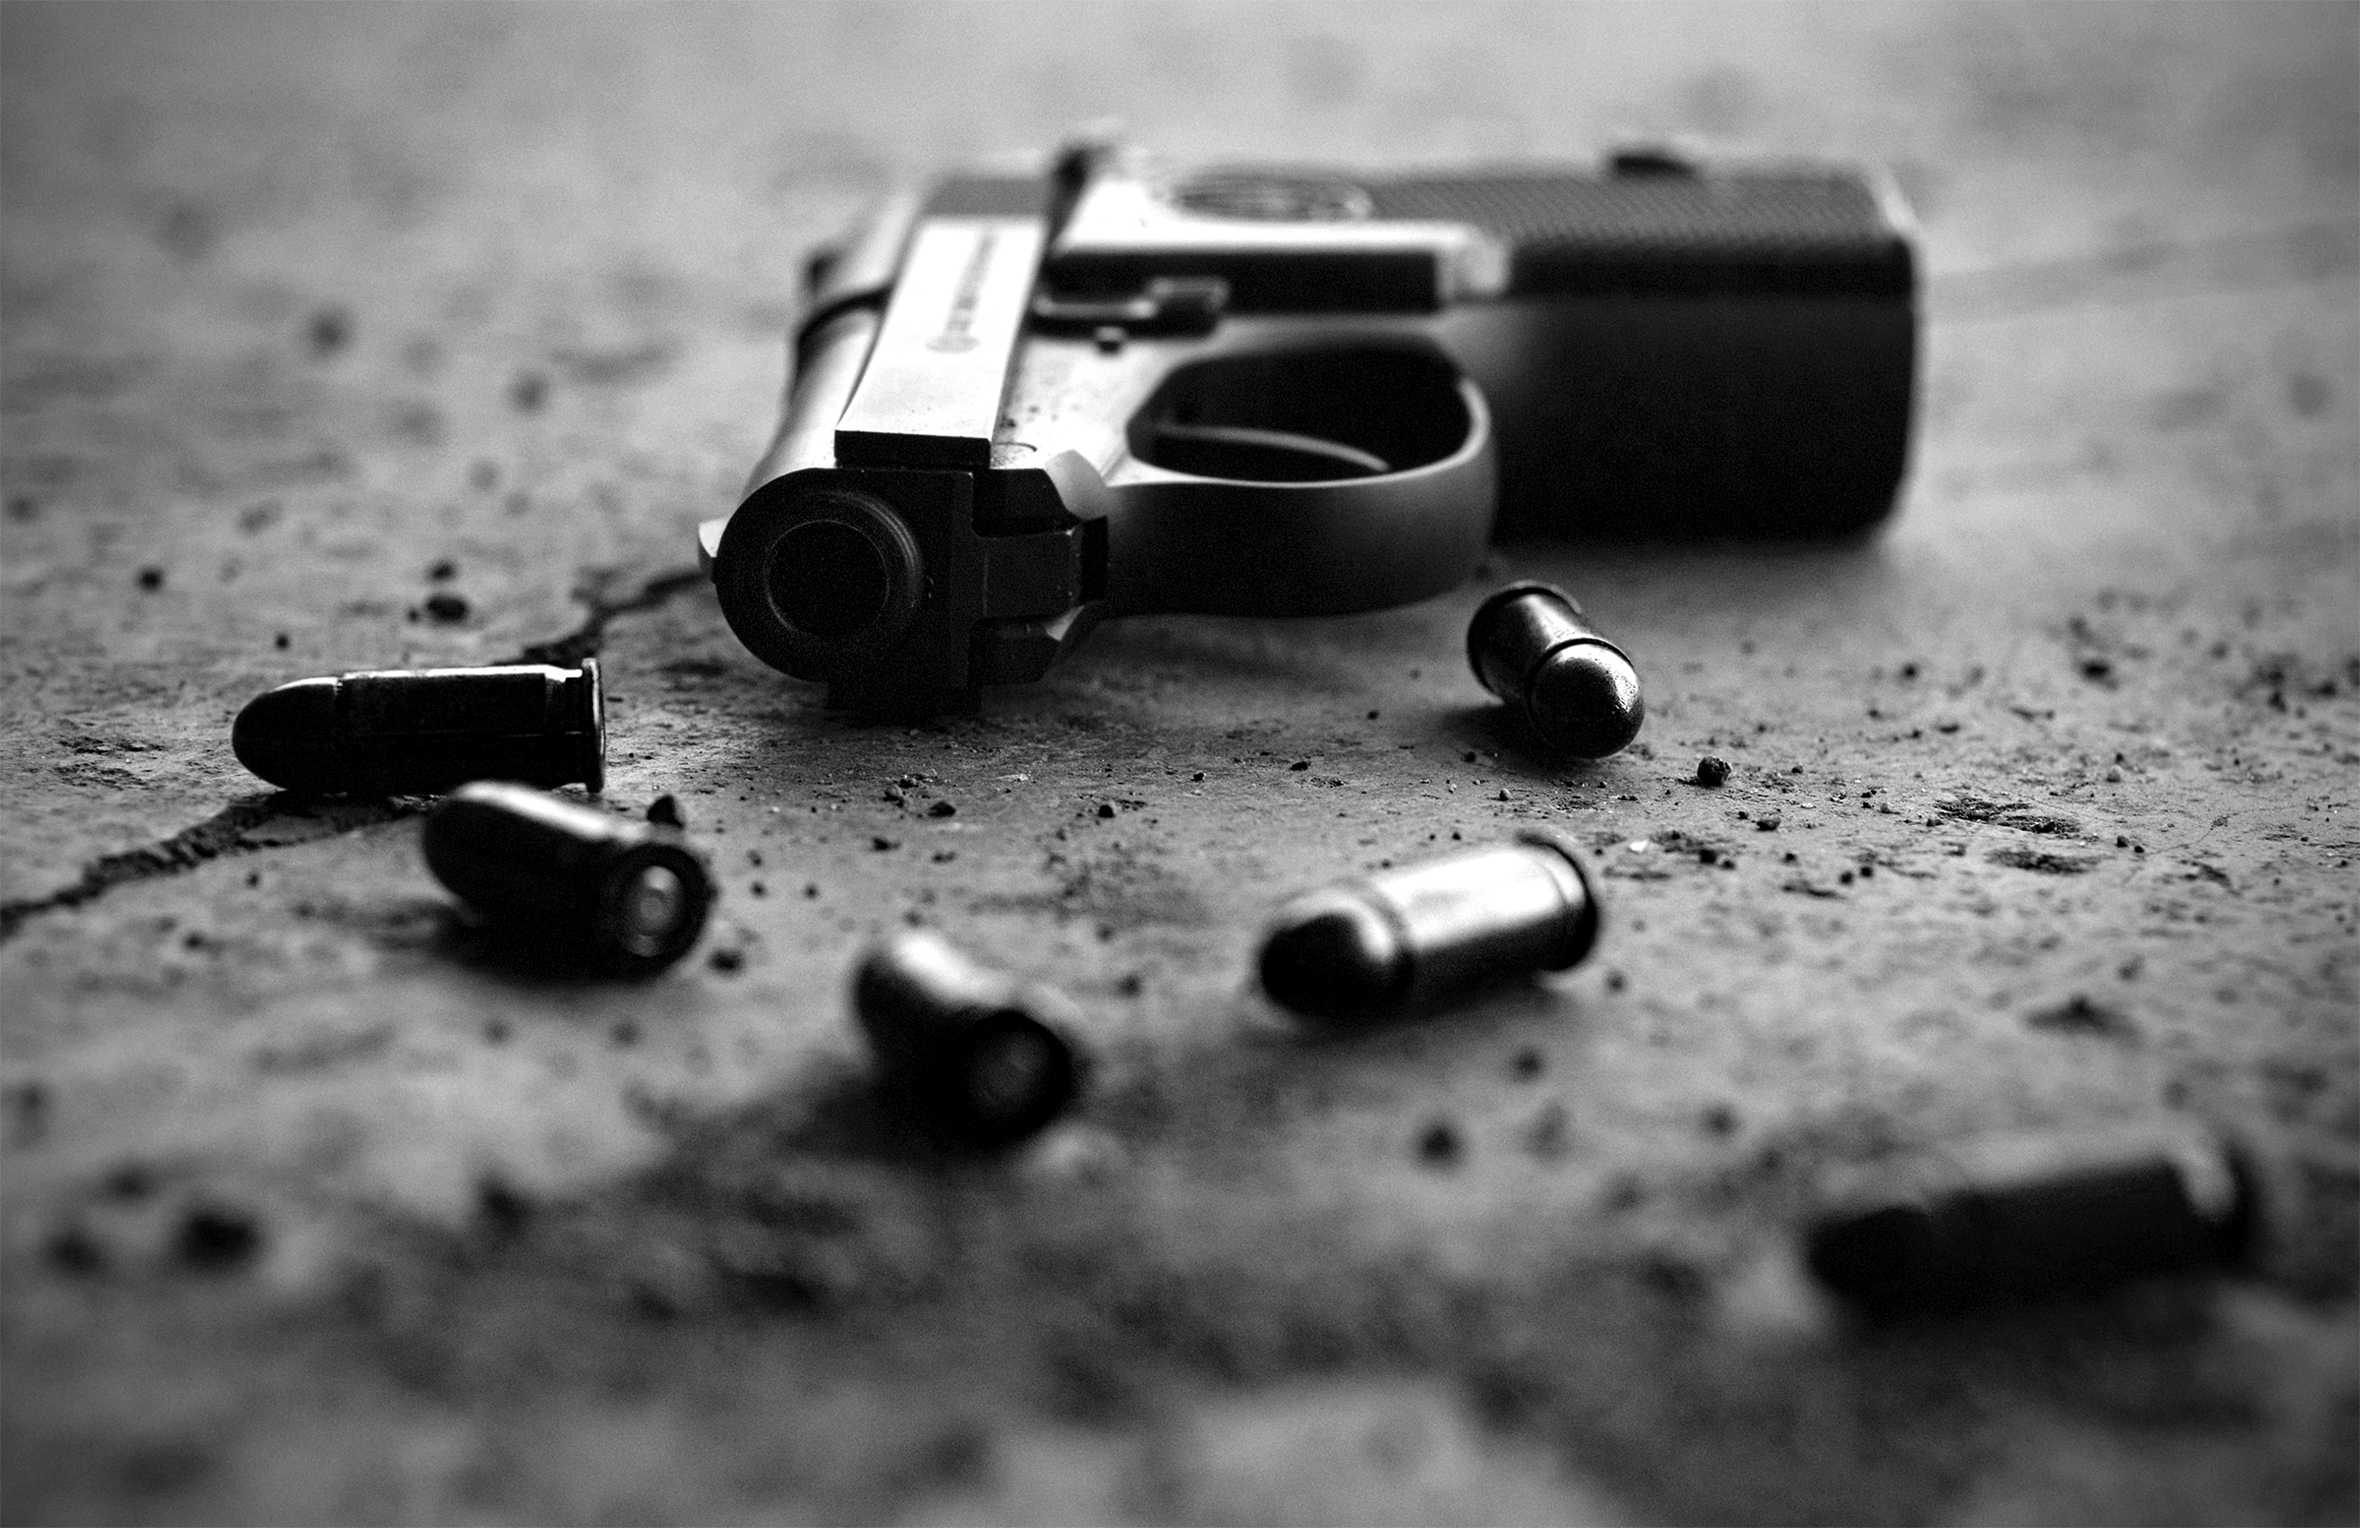 A close-up of a pistol and six bullets lying on the ground. The barrel of the pistol is pointed toward the camera.